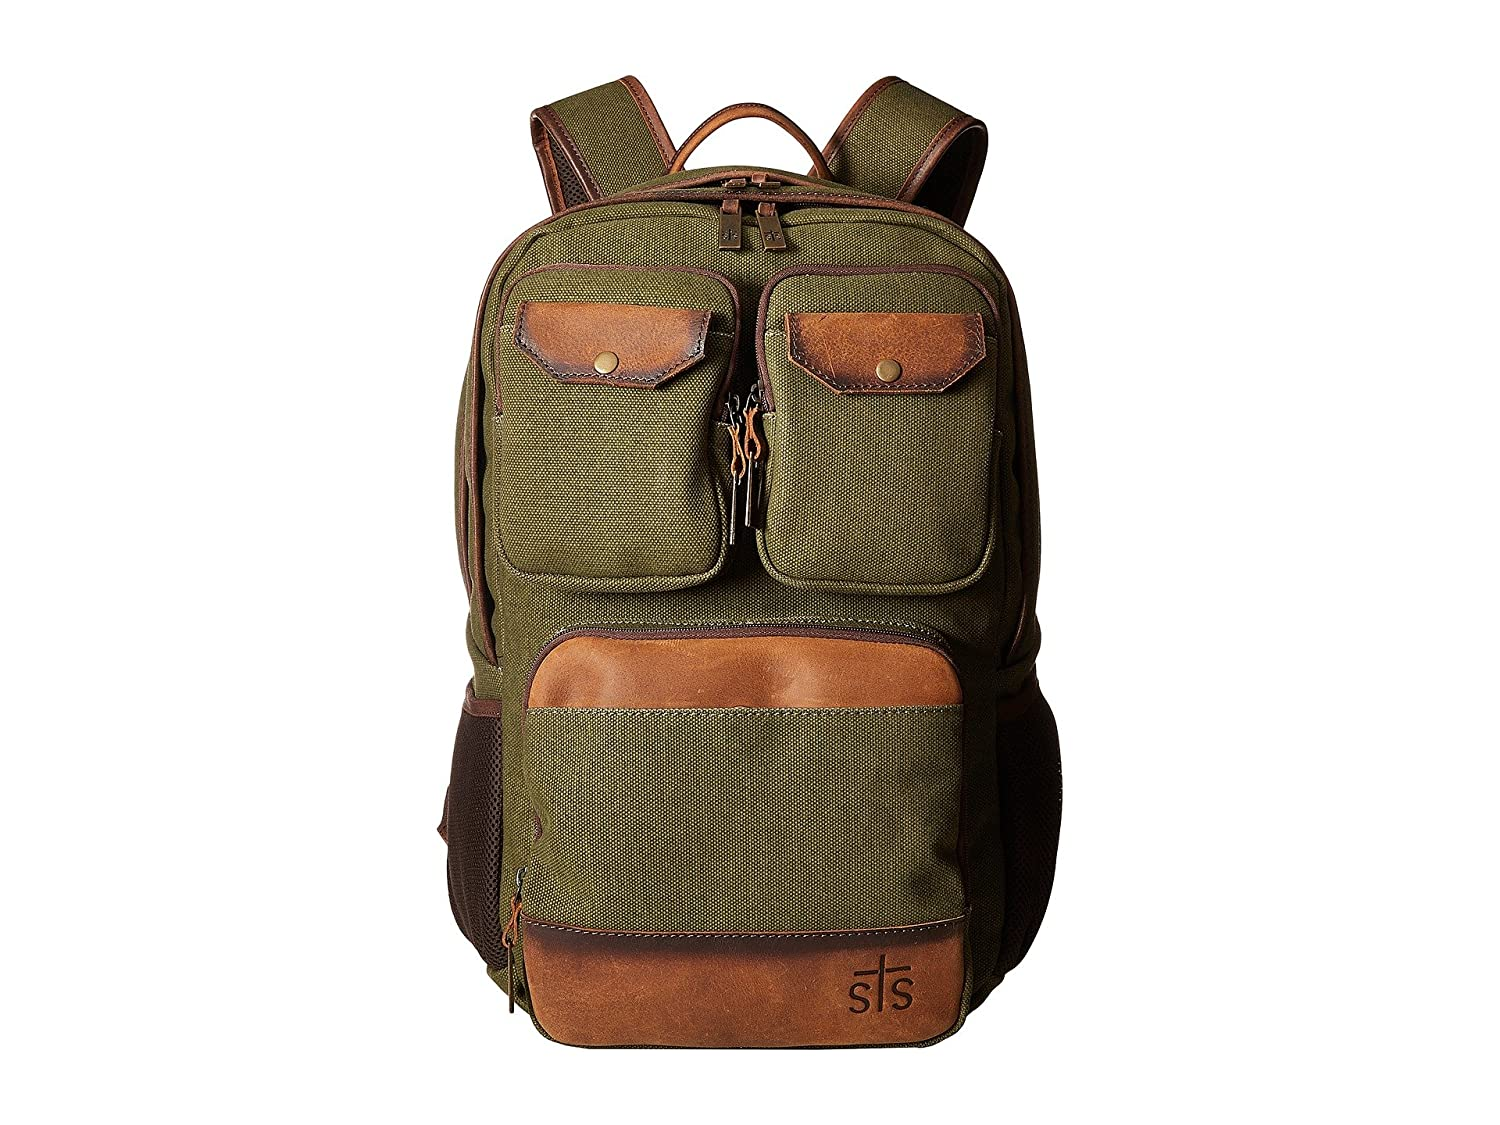 [STSランチウェア] STS Ranchwear メンズ The Foreman Military Backpack バックパック [並行輸入品]  Military Green Canvas/Brown Leather B06Y1FQZRZ